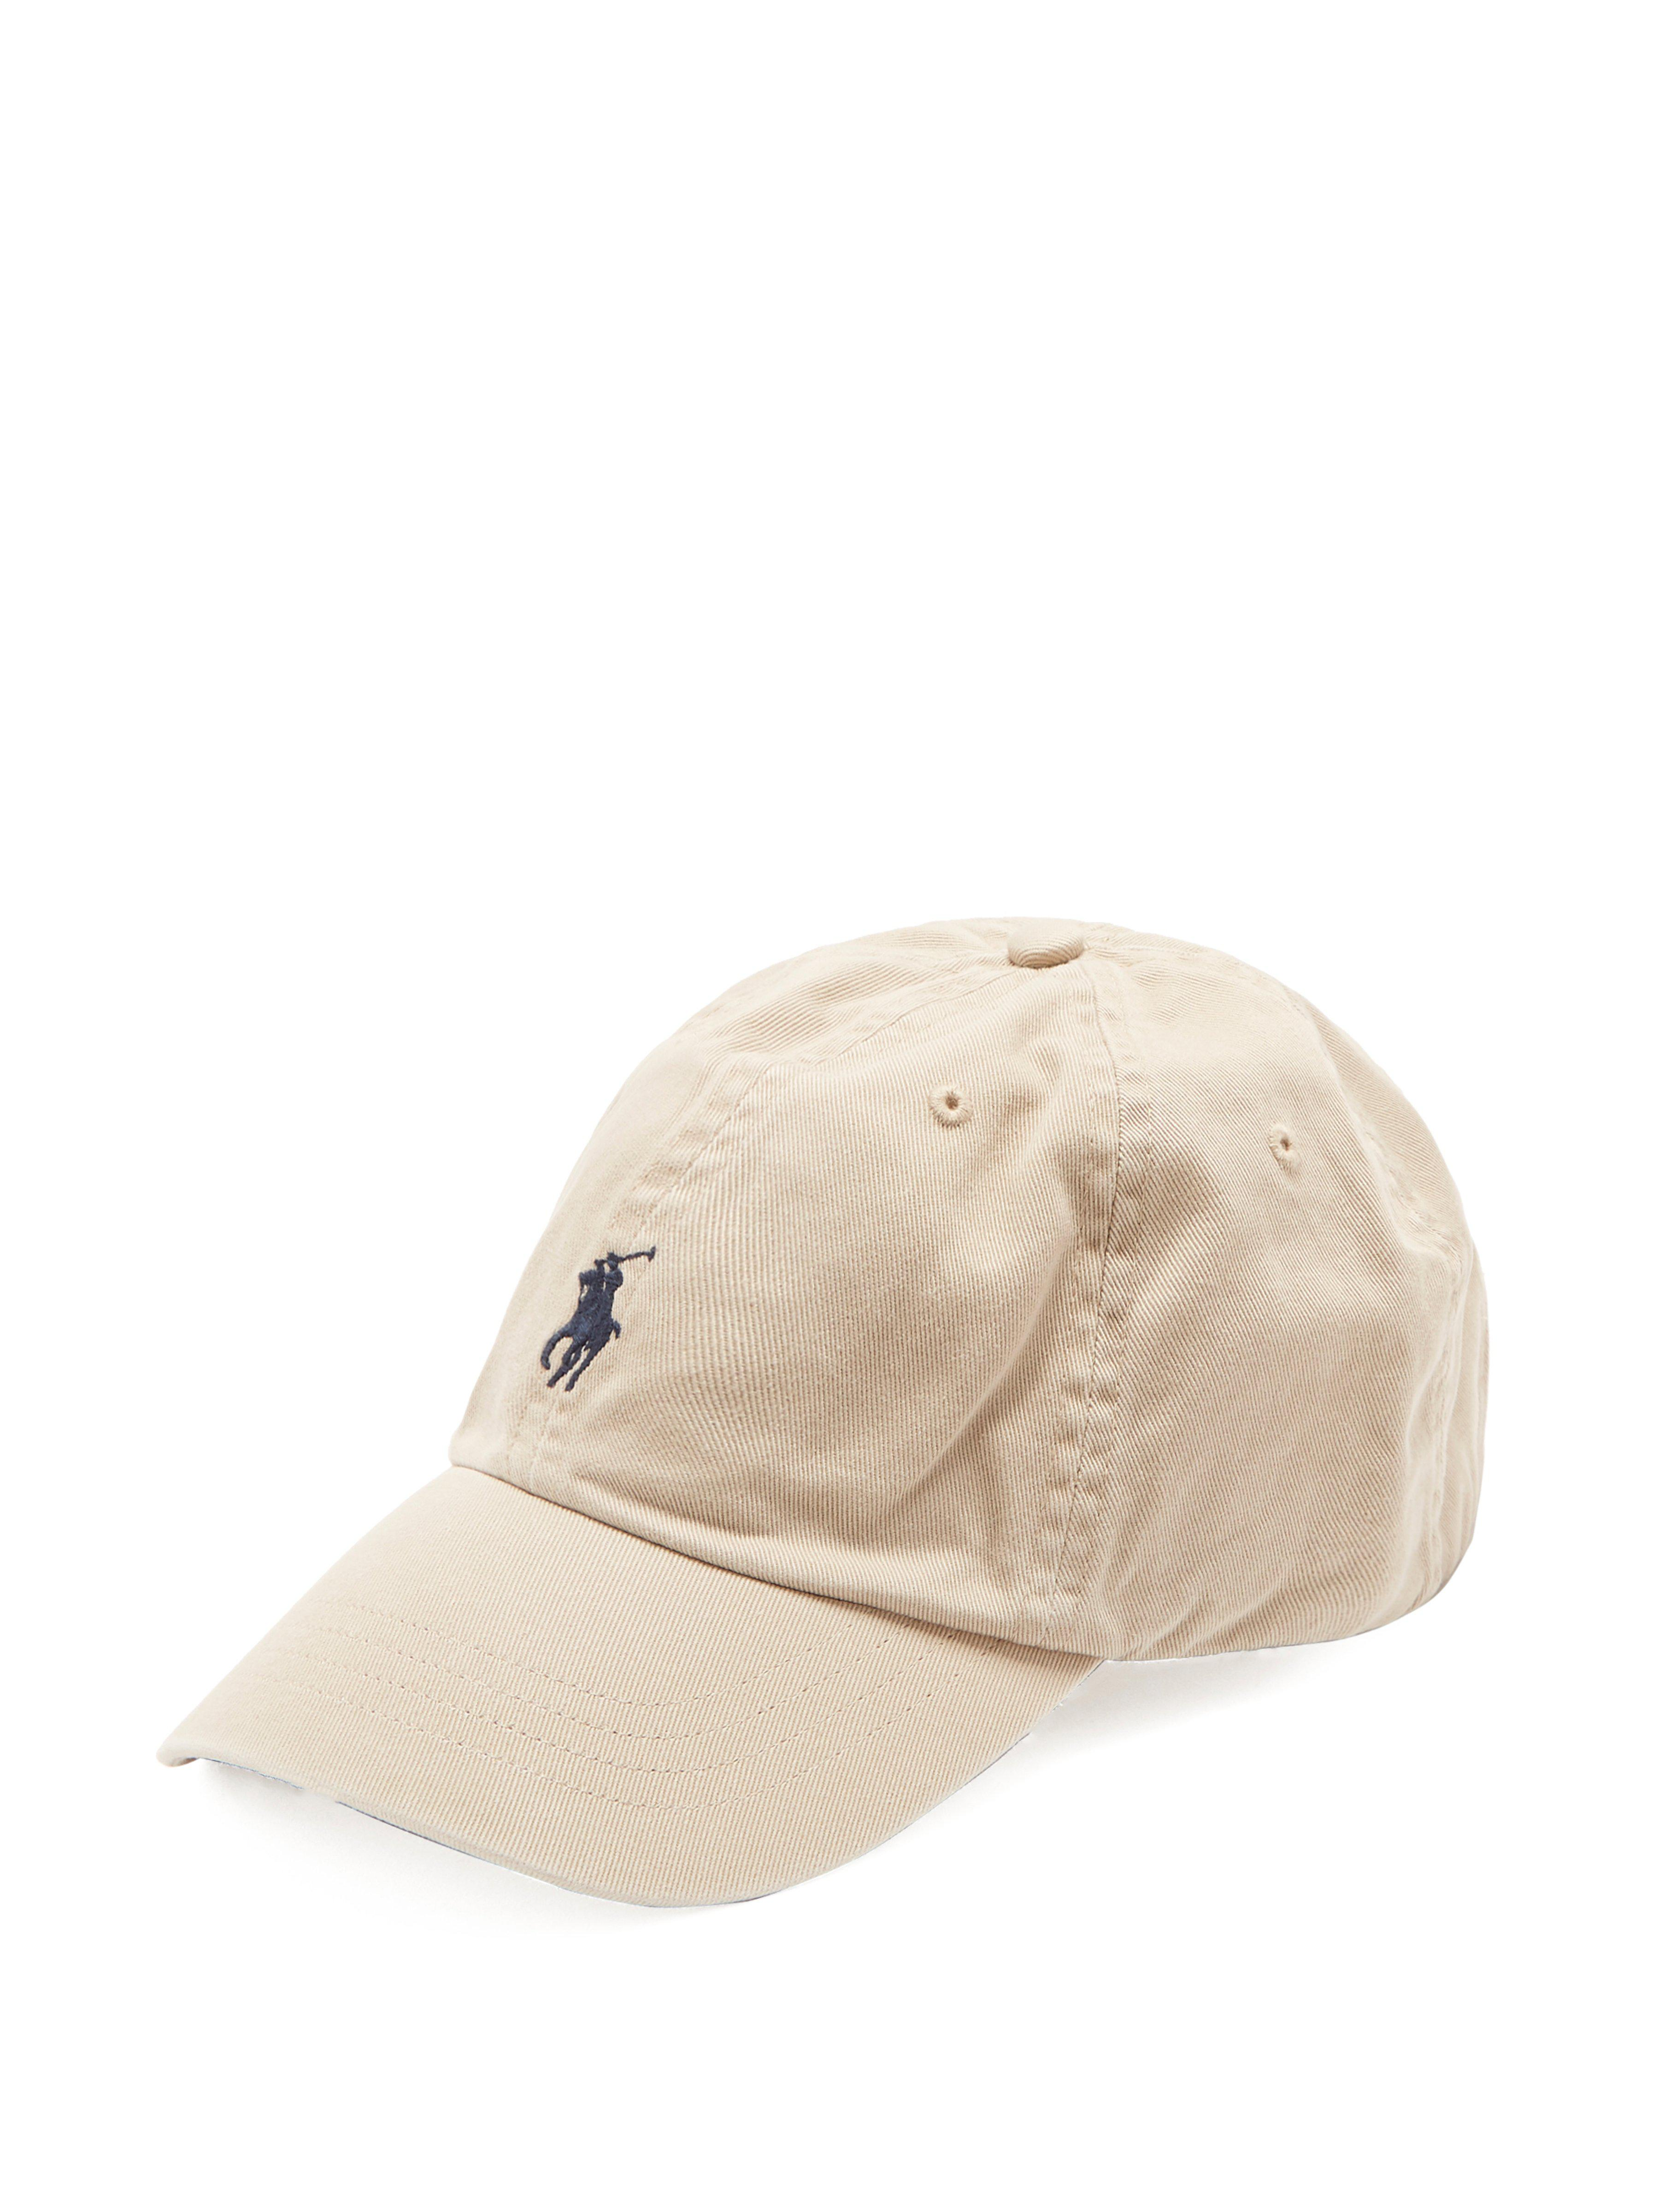 13b0d3b049f Polo Ralph Lauren Logo Embroidered Cotton Cap in Natural for Men - Lyst